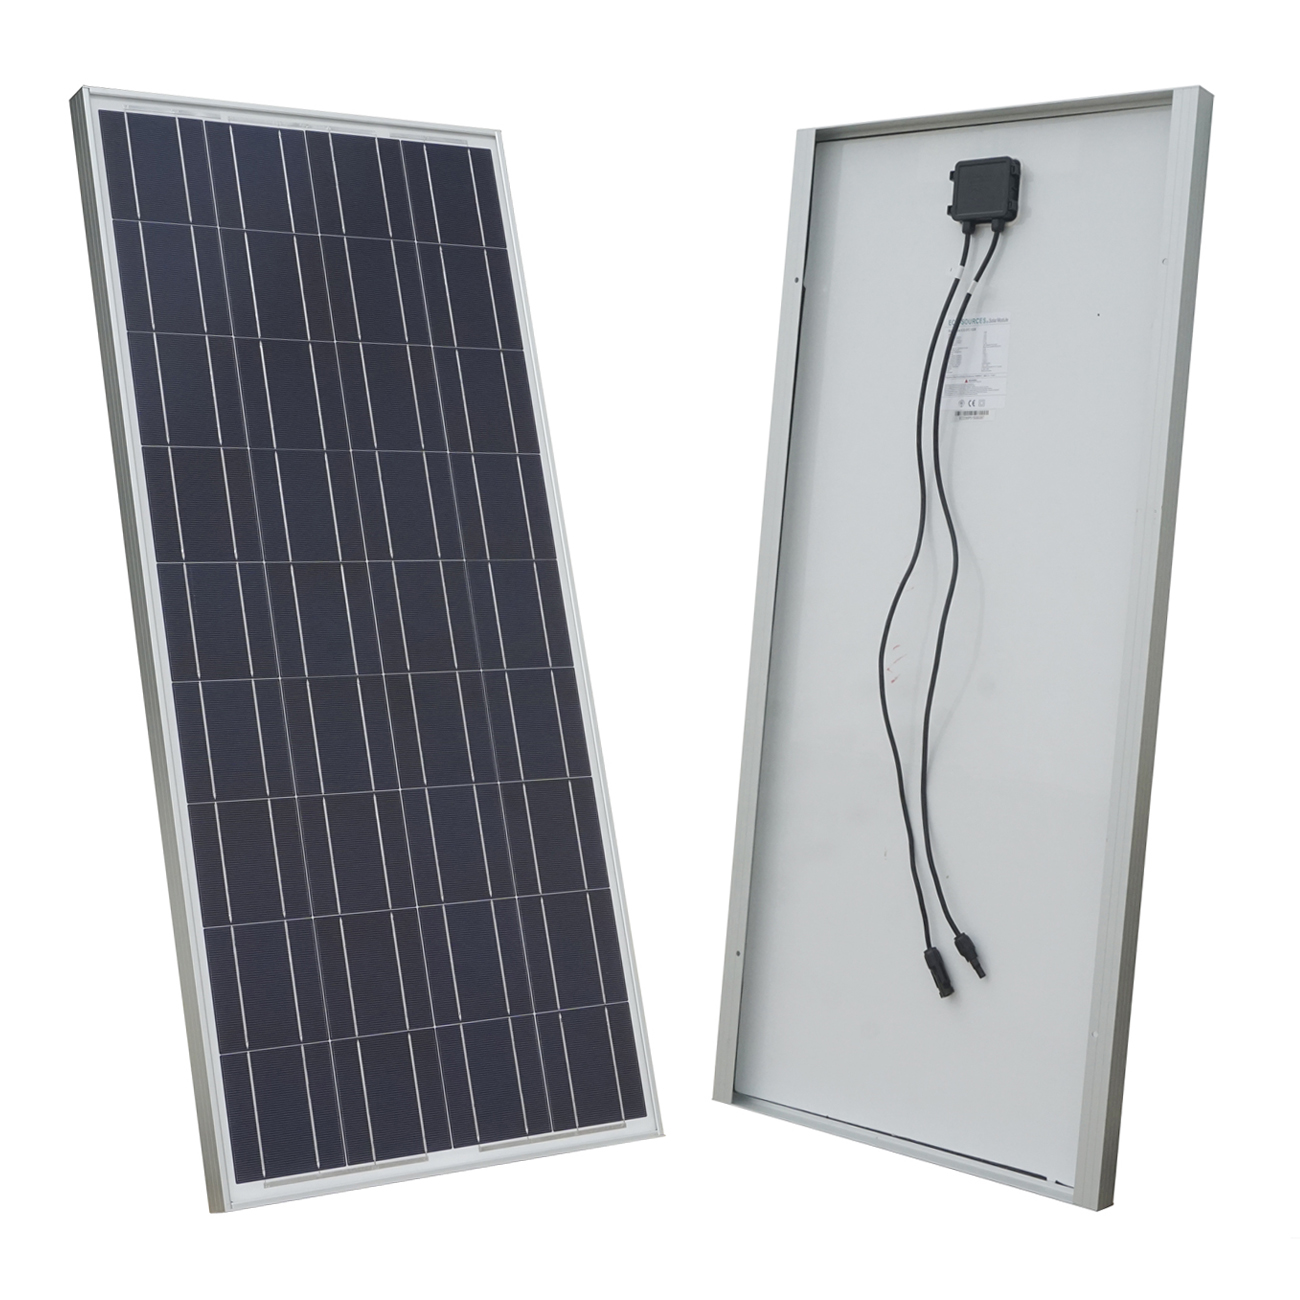 USA Stock 3 PCS 100 Watt 100W 12V Solar Panel Battery Charger for RV Boat Home Camping Off Grid Solar Generators 100w folding solar panel solar battery charger for car boat caravan golf cart